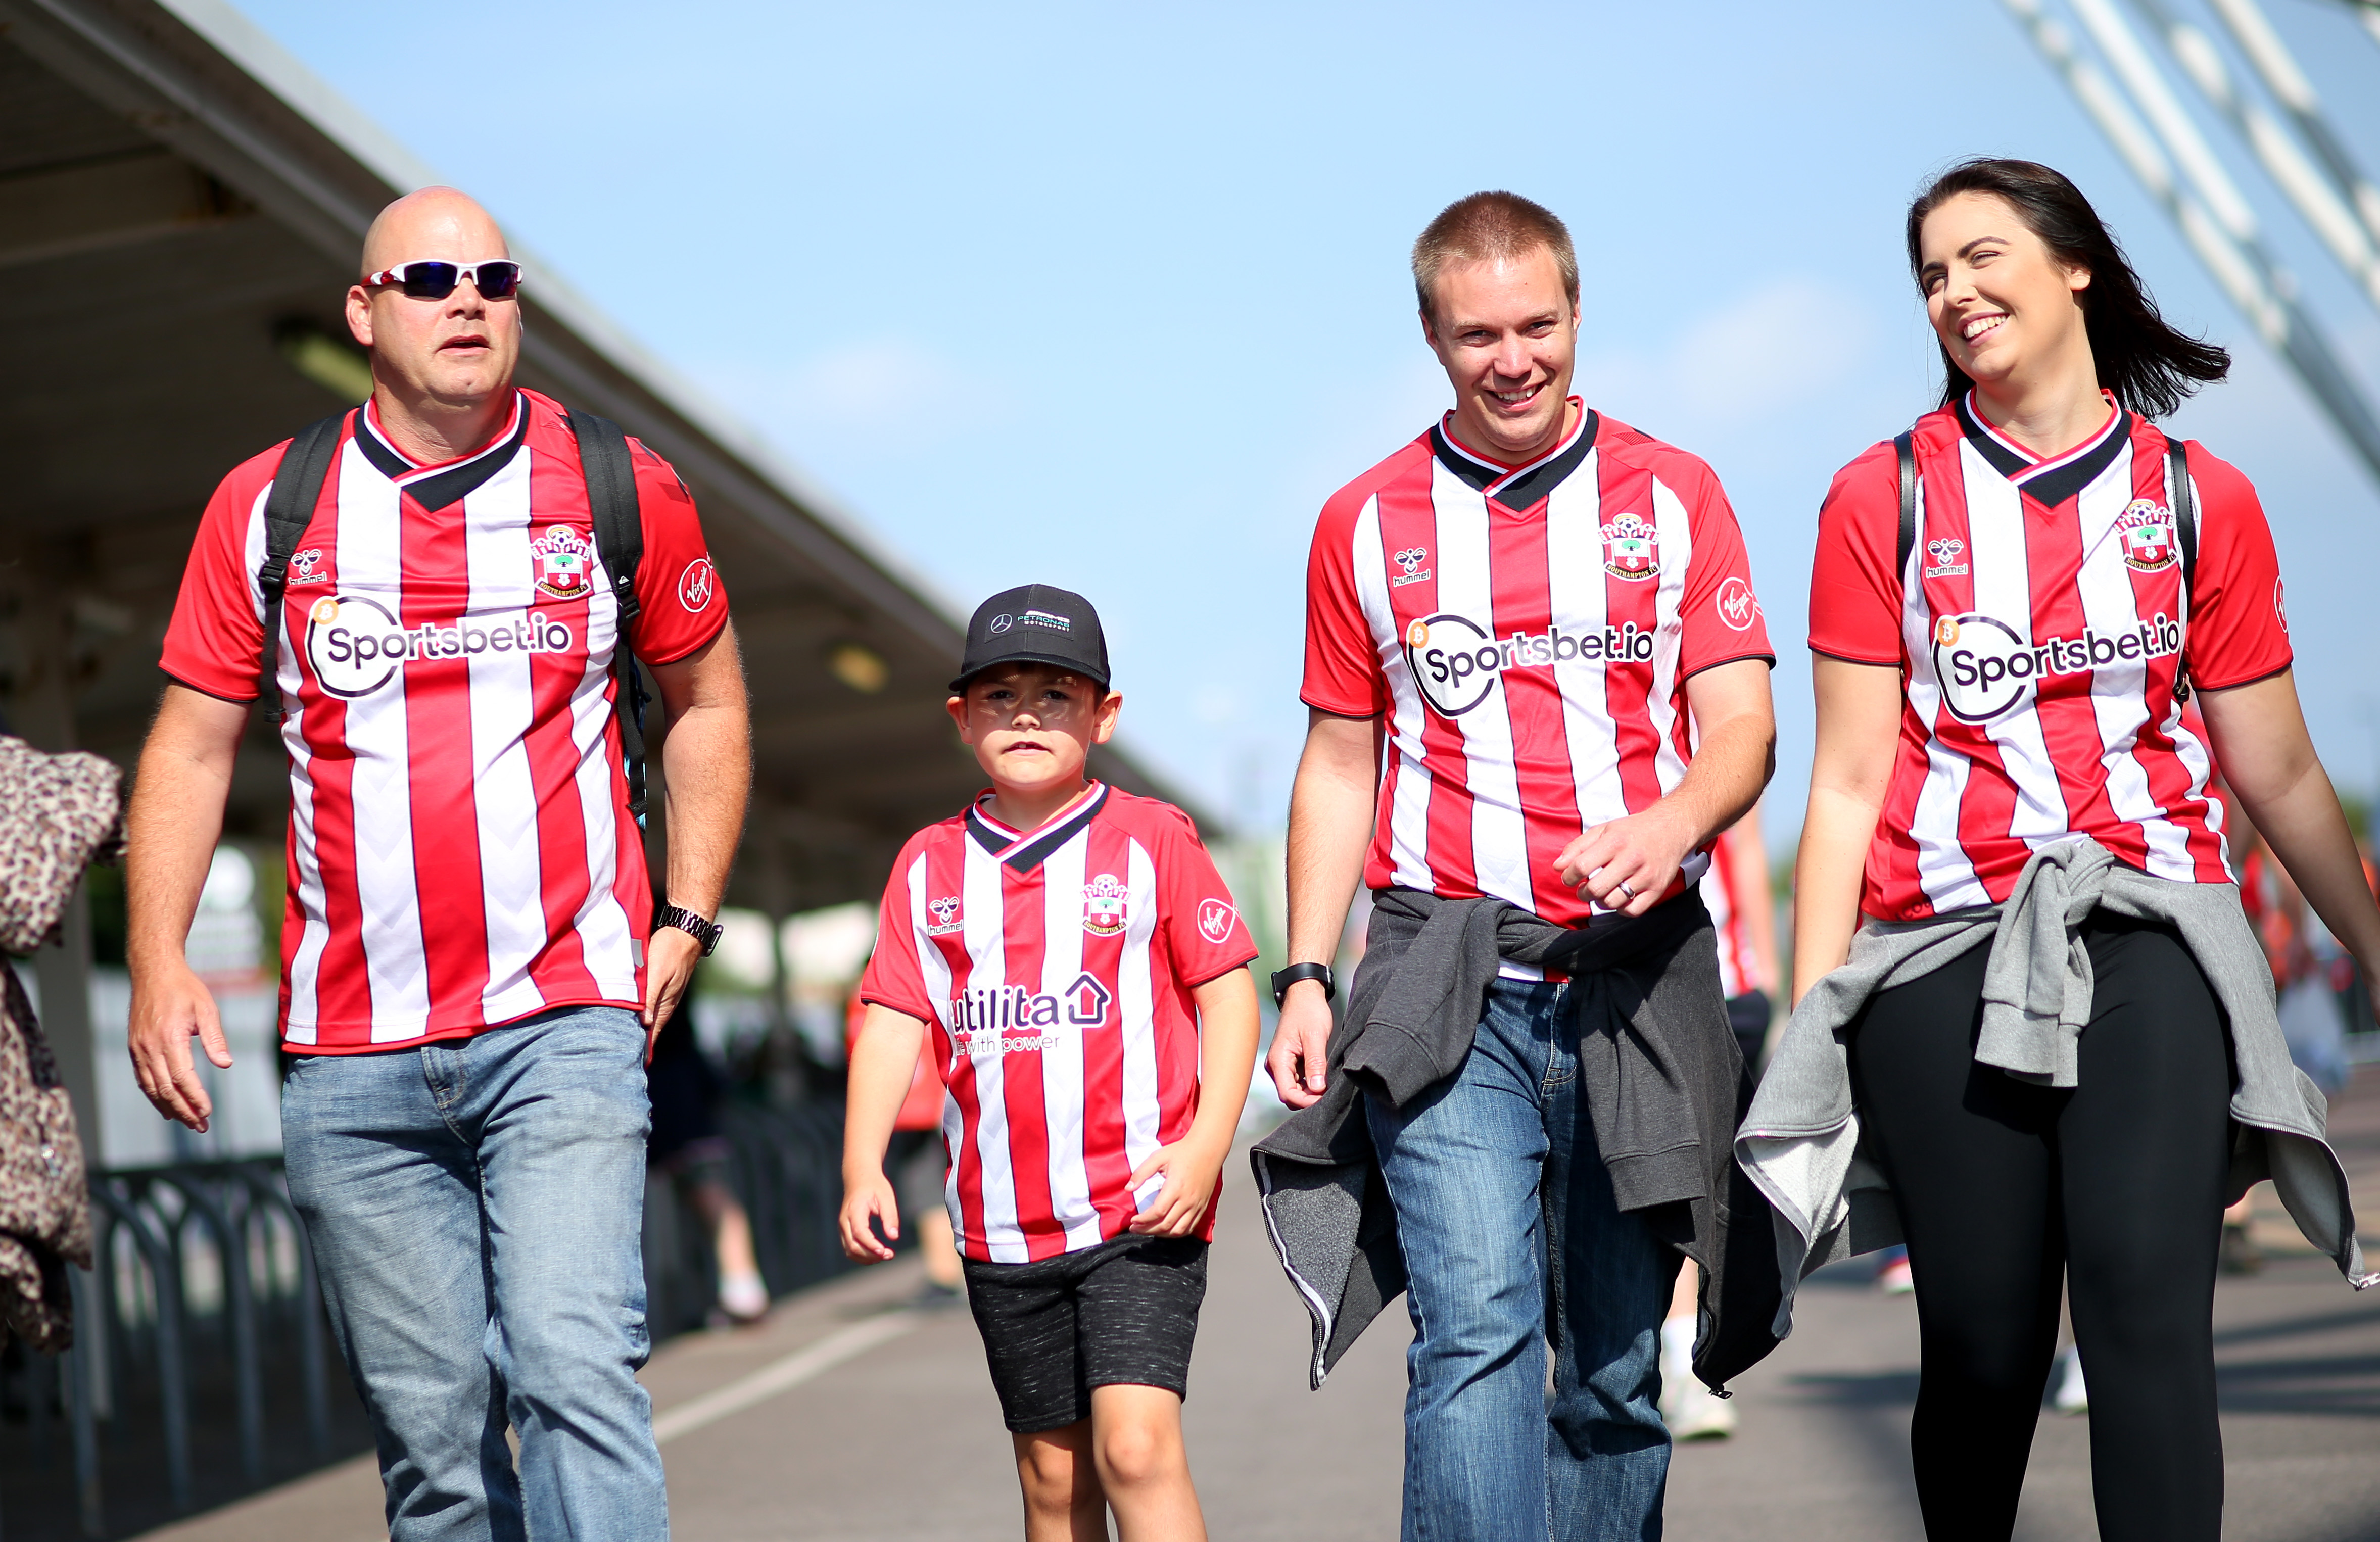 SOUTHAMPTON, ENGLAND - SEPTEMBER 26: Saints fans before the Premier League match between Southampton and Wolverhampton Wanderers at St Mary's Stadium on September 26, 2021, in Southampton, England. (Photo by Chris Moorhouse/Southampton FC via Getty Images)